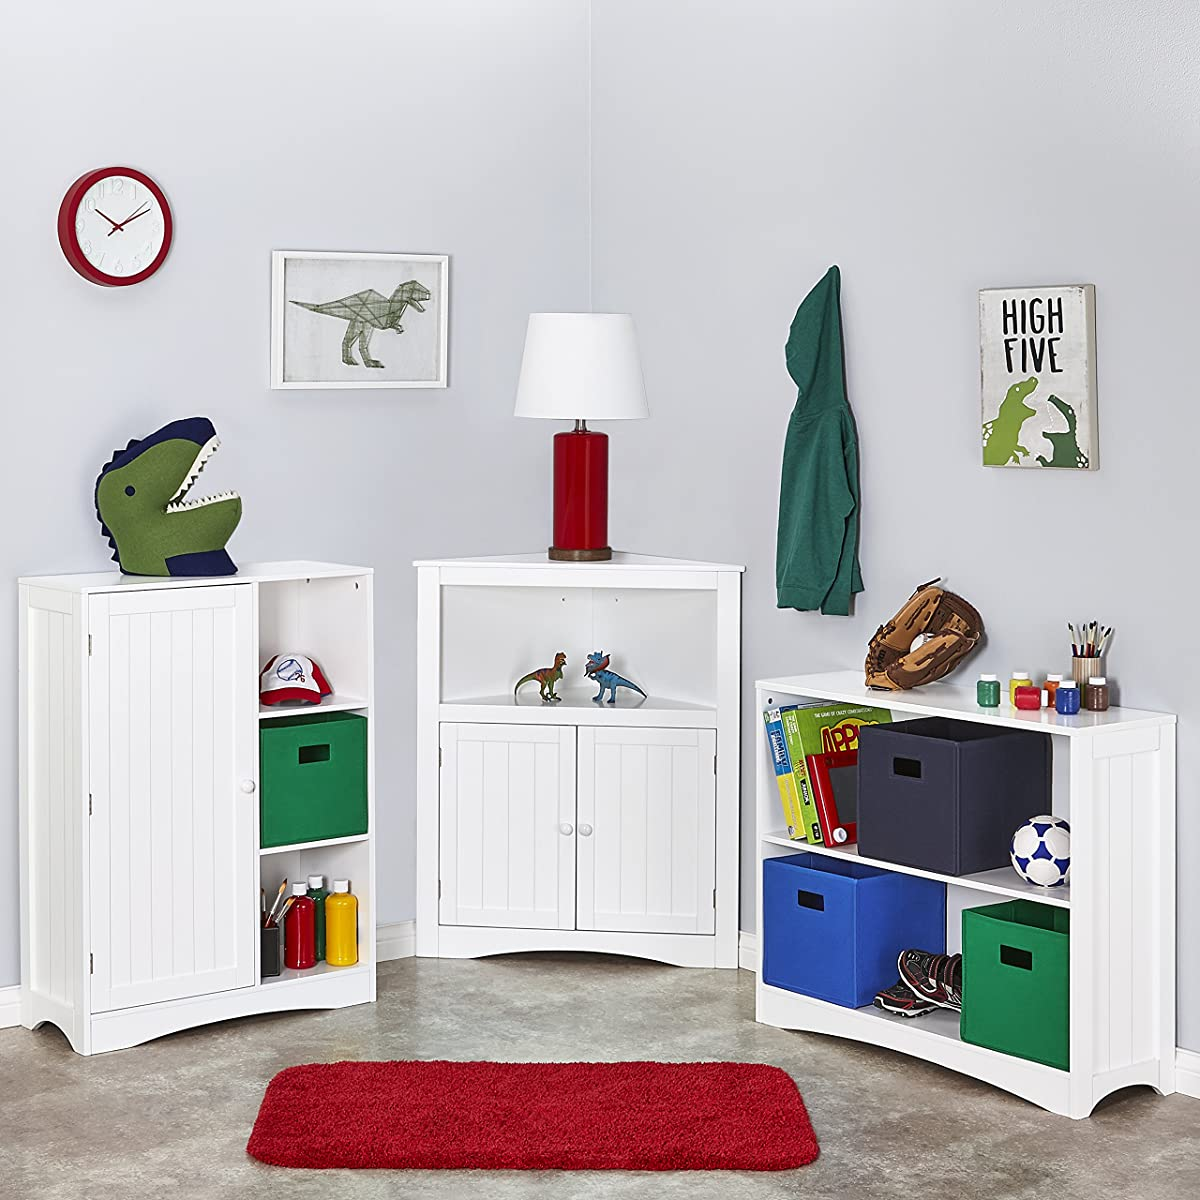 RiverRidge Kids 02-140 2-Door Corner Cabinet - White